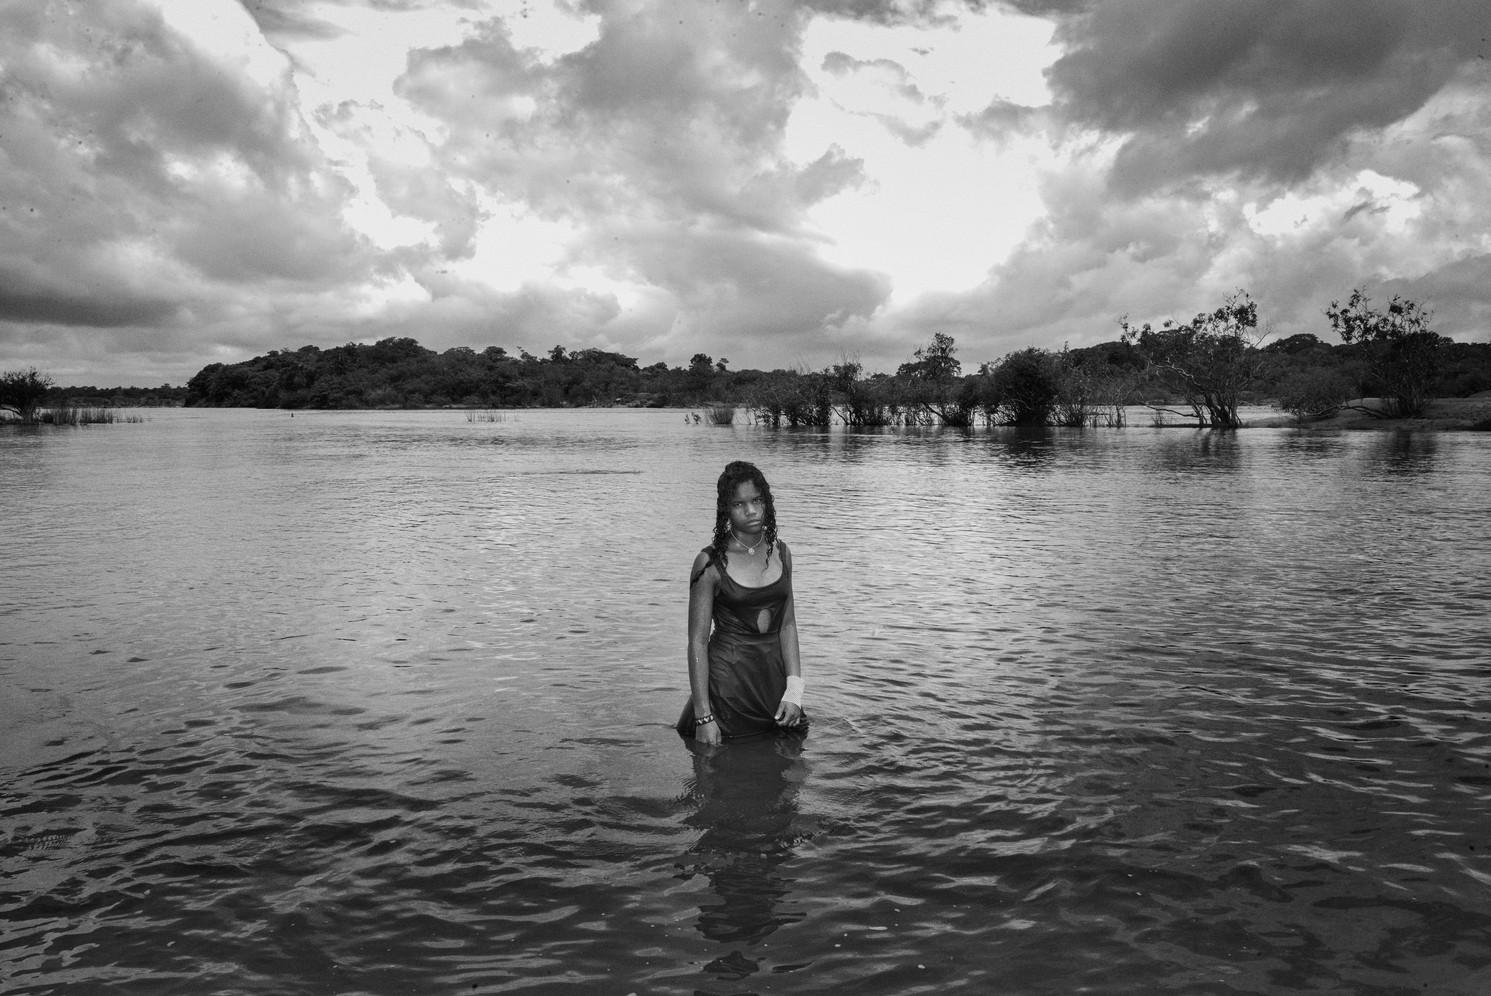 A girl from the Juruna indigenous tribe stands for a portrait in the Xingu river in the Mïratu village, Altamira. The nearby Belo Monte Hydroelectric dam was inaugurated in 2016. Since then, Juruna tribal leaders complain that the flow of the Xingu River has changed. As a result, the river's drier periods are increasingly common. This means that there are less fish for them to eat and that it's more difficult to travel to the city by boat.